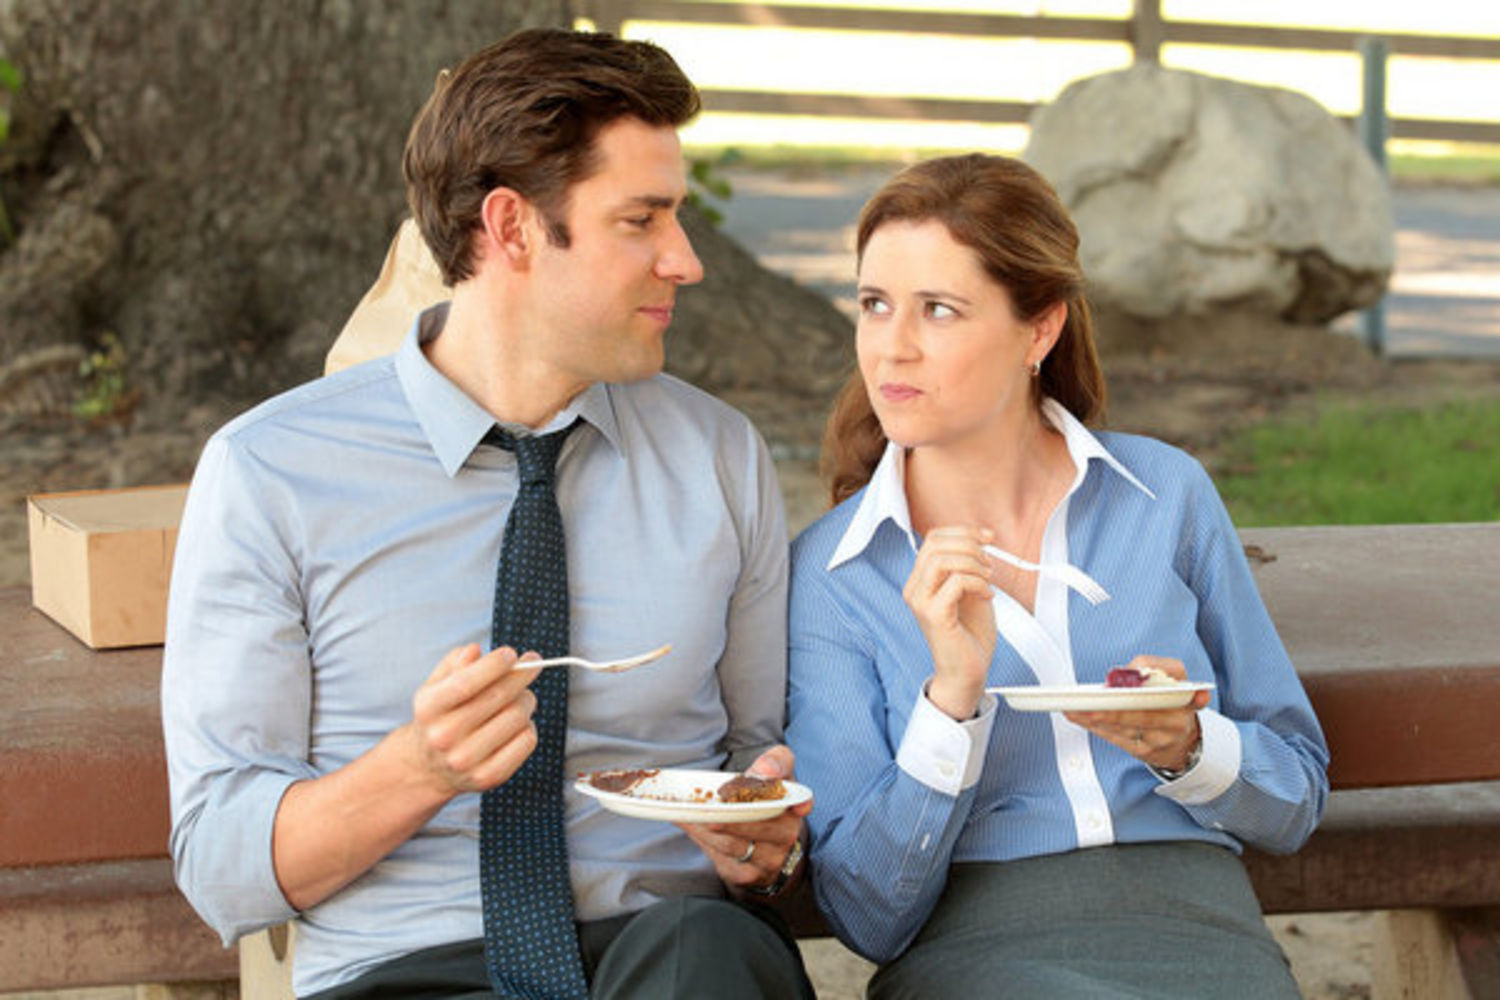 What Jim and Pam taught me about office romance